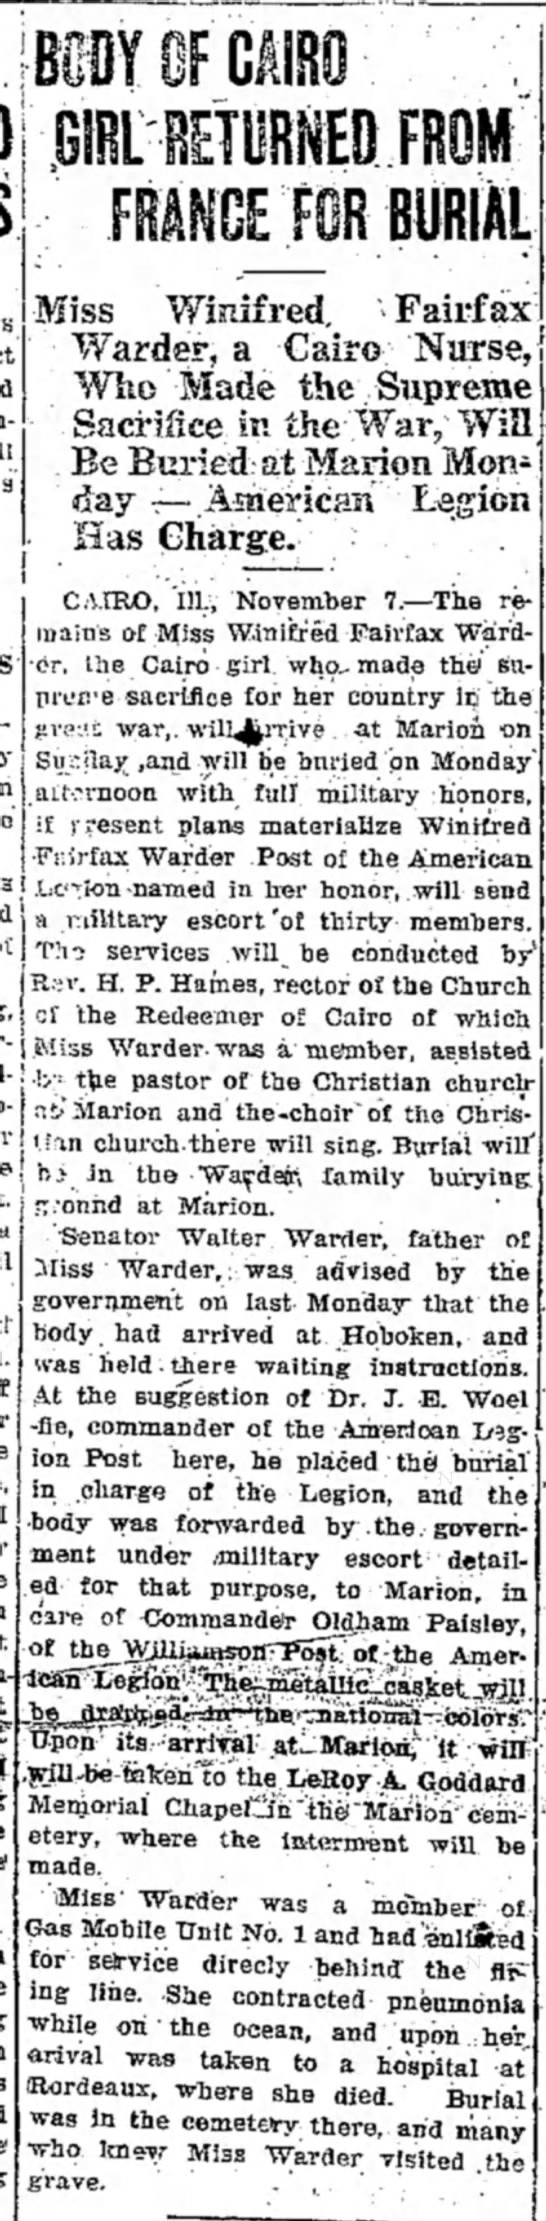 Winifred Fairfax Warder buried in Marion IL (1920) -